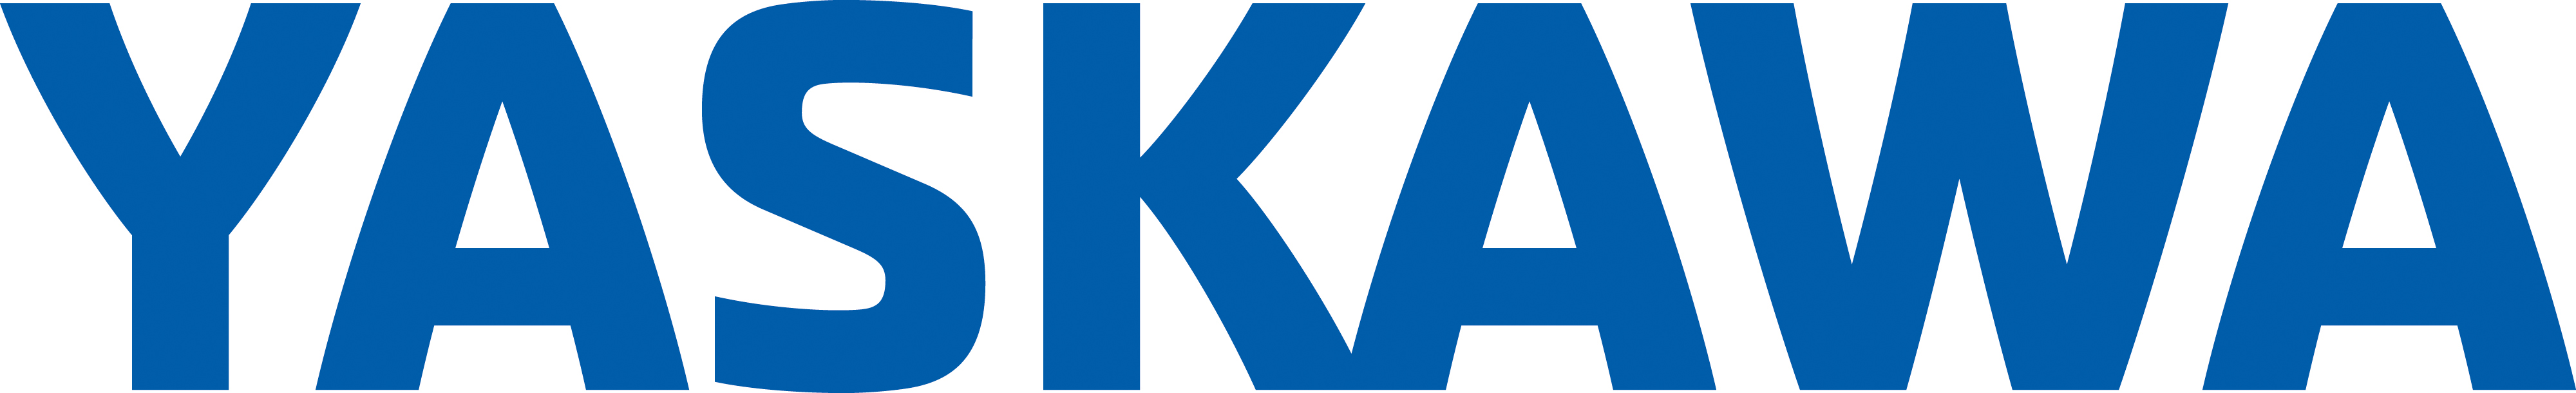 YASKAWA Europe (formerly VIPA GmbH)